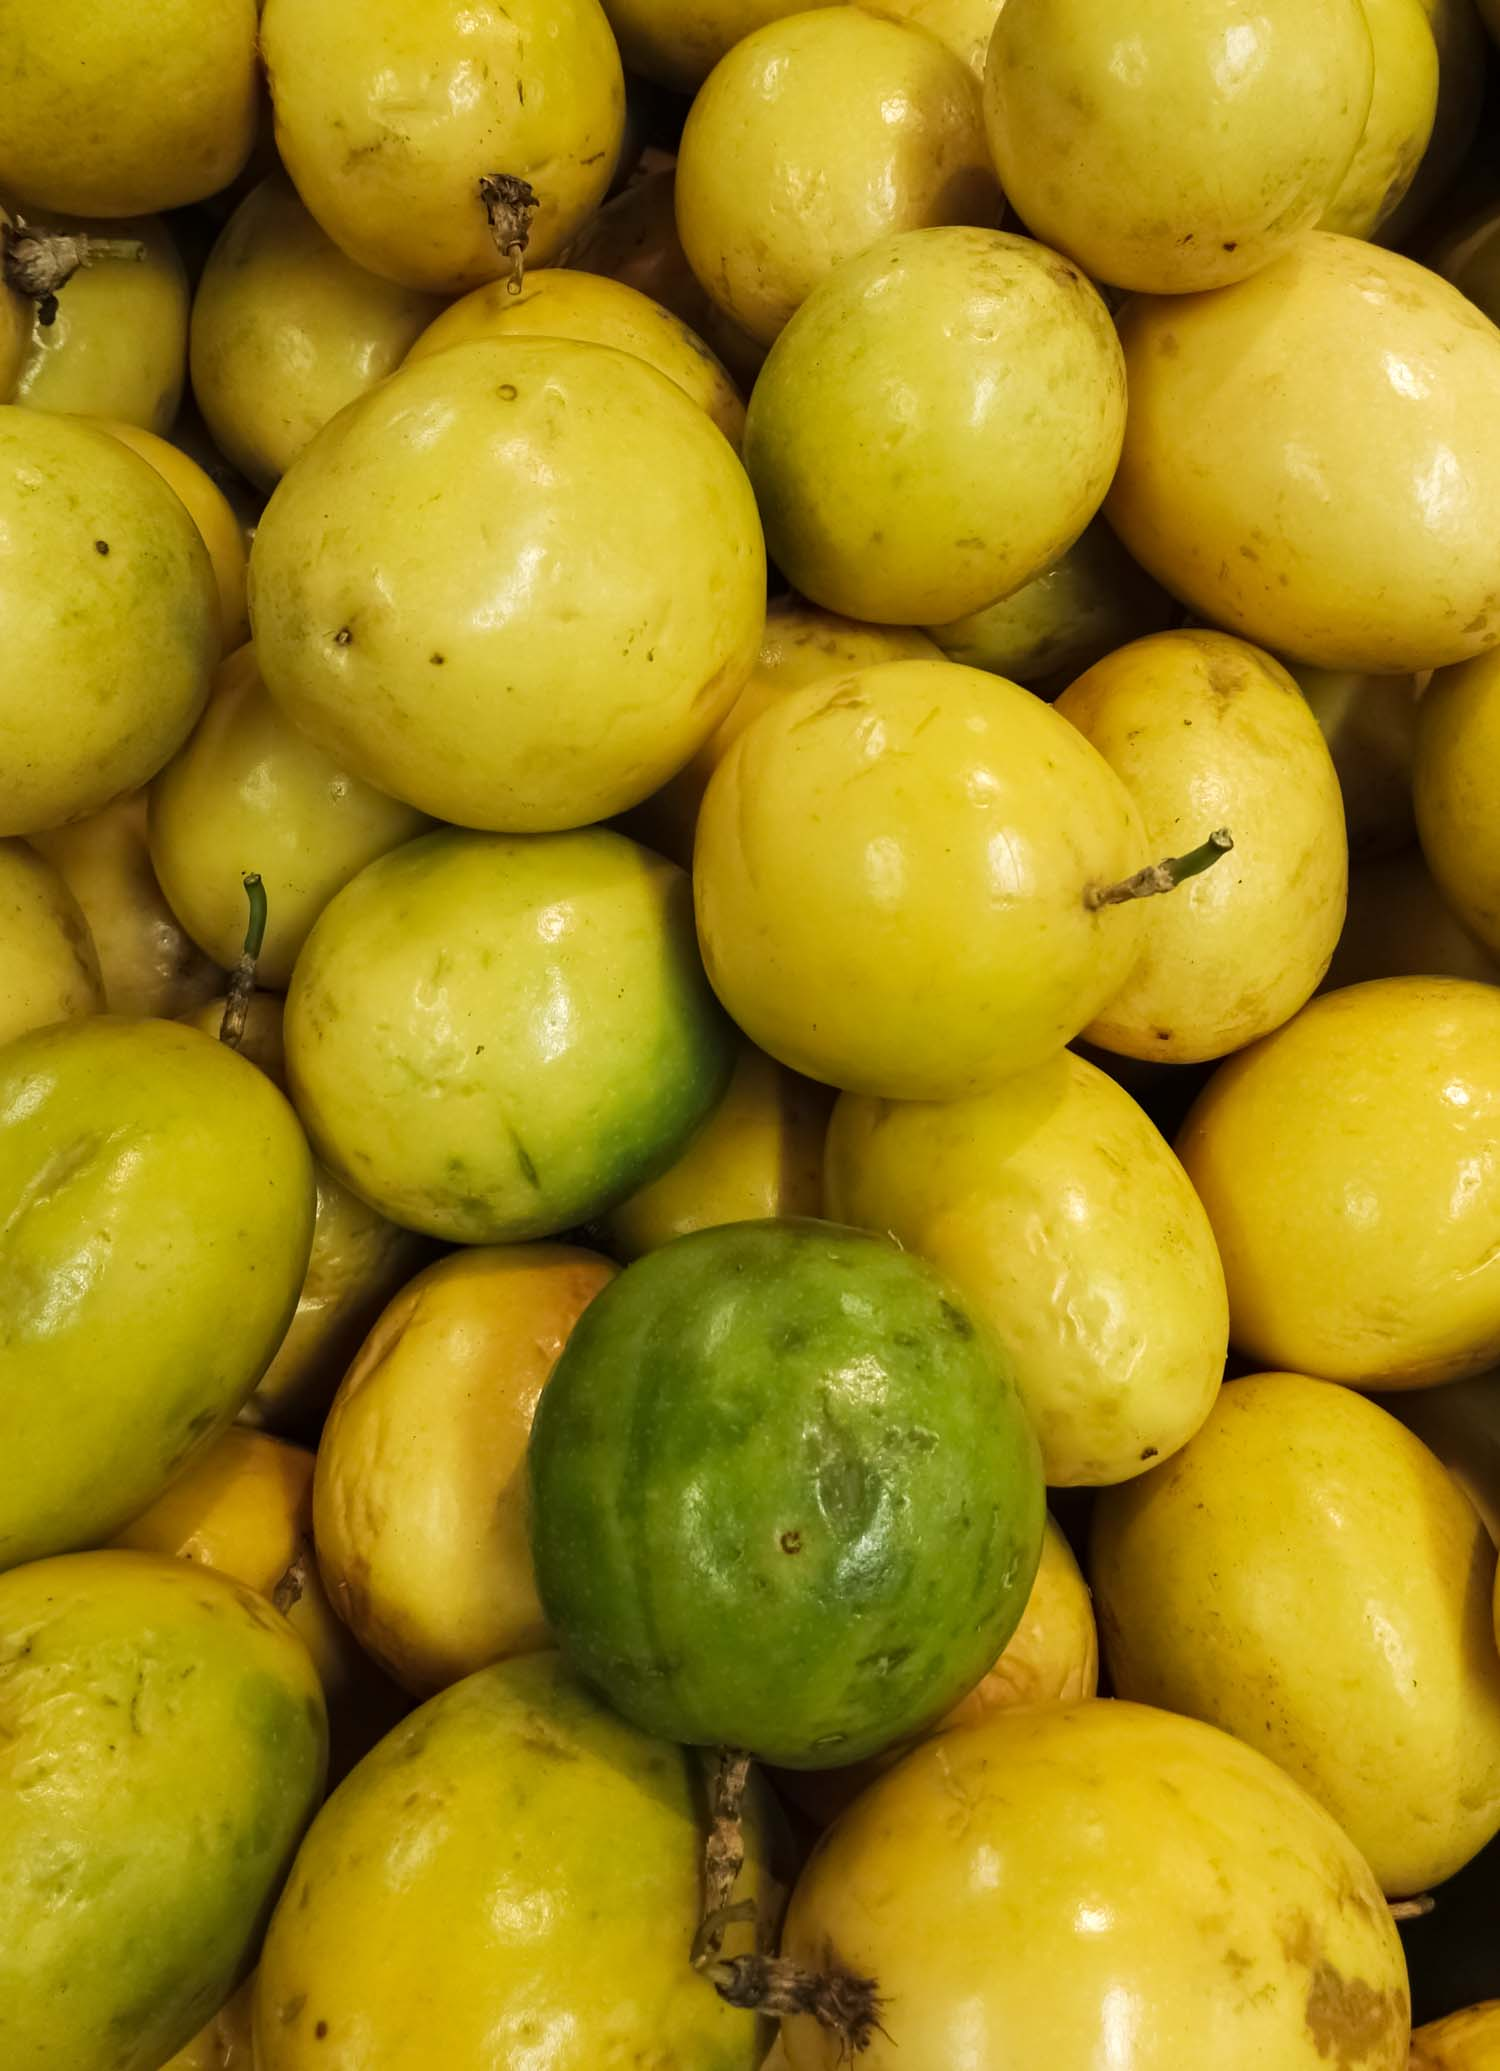 Delicious and juicy passion fruit heap. Maracuya, Passiflora edulis produce. Acid flavor, group of tropical fruits.